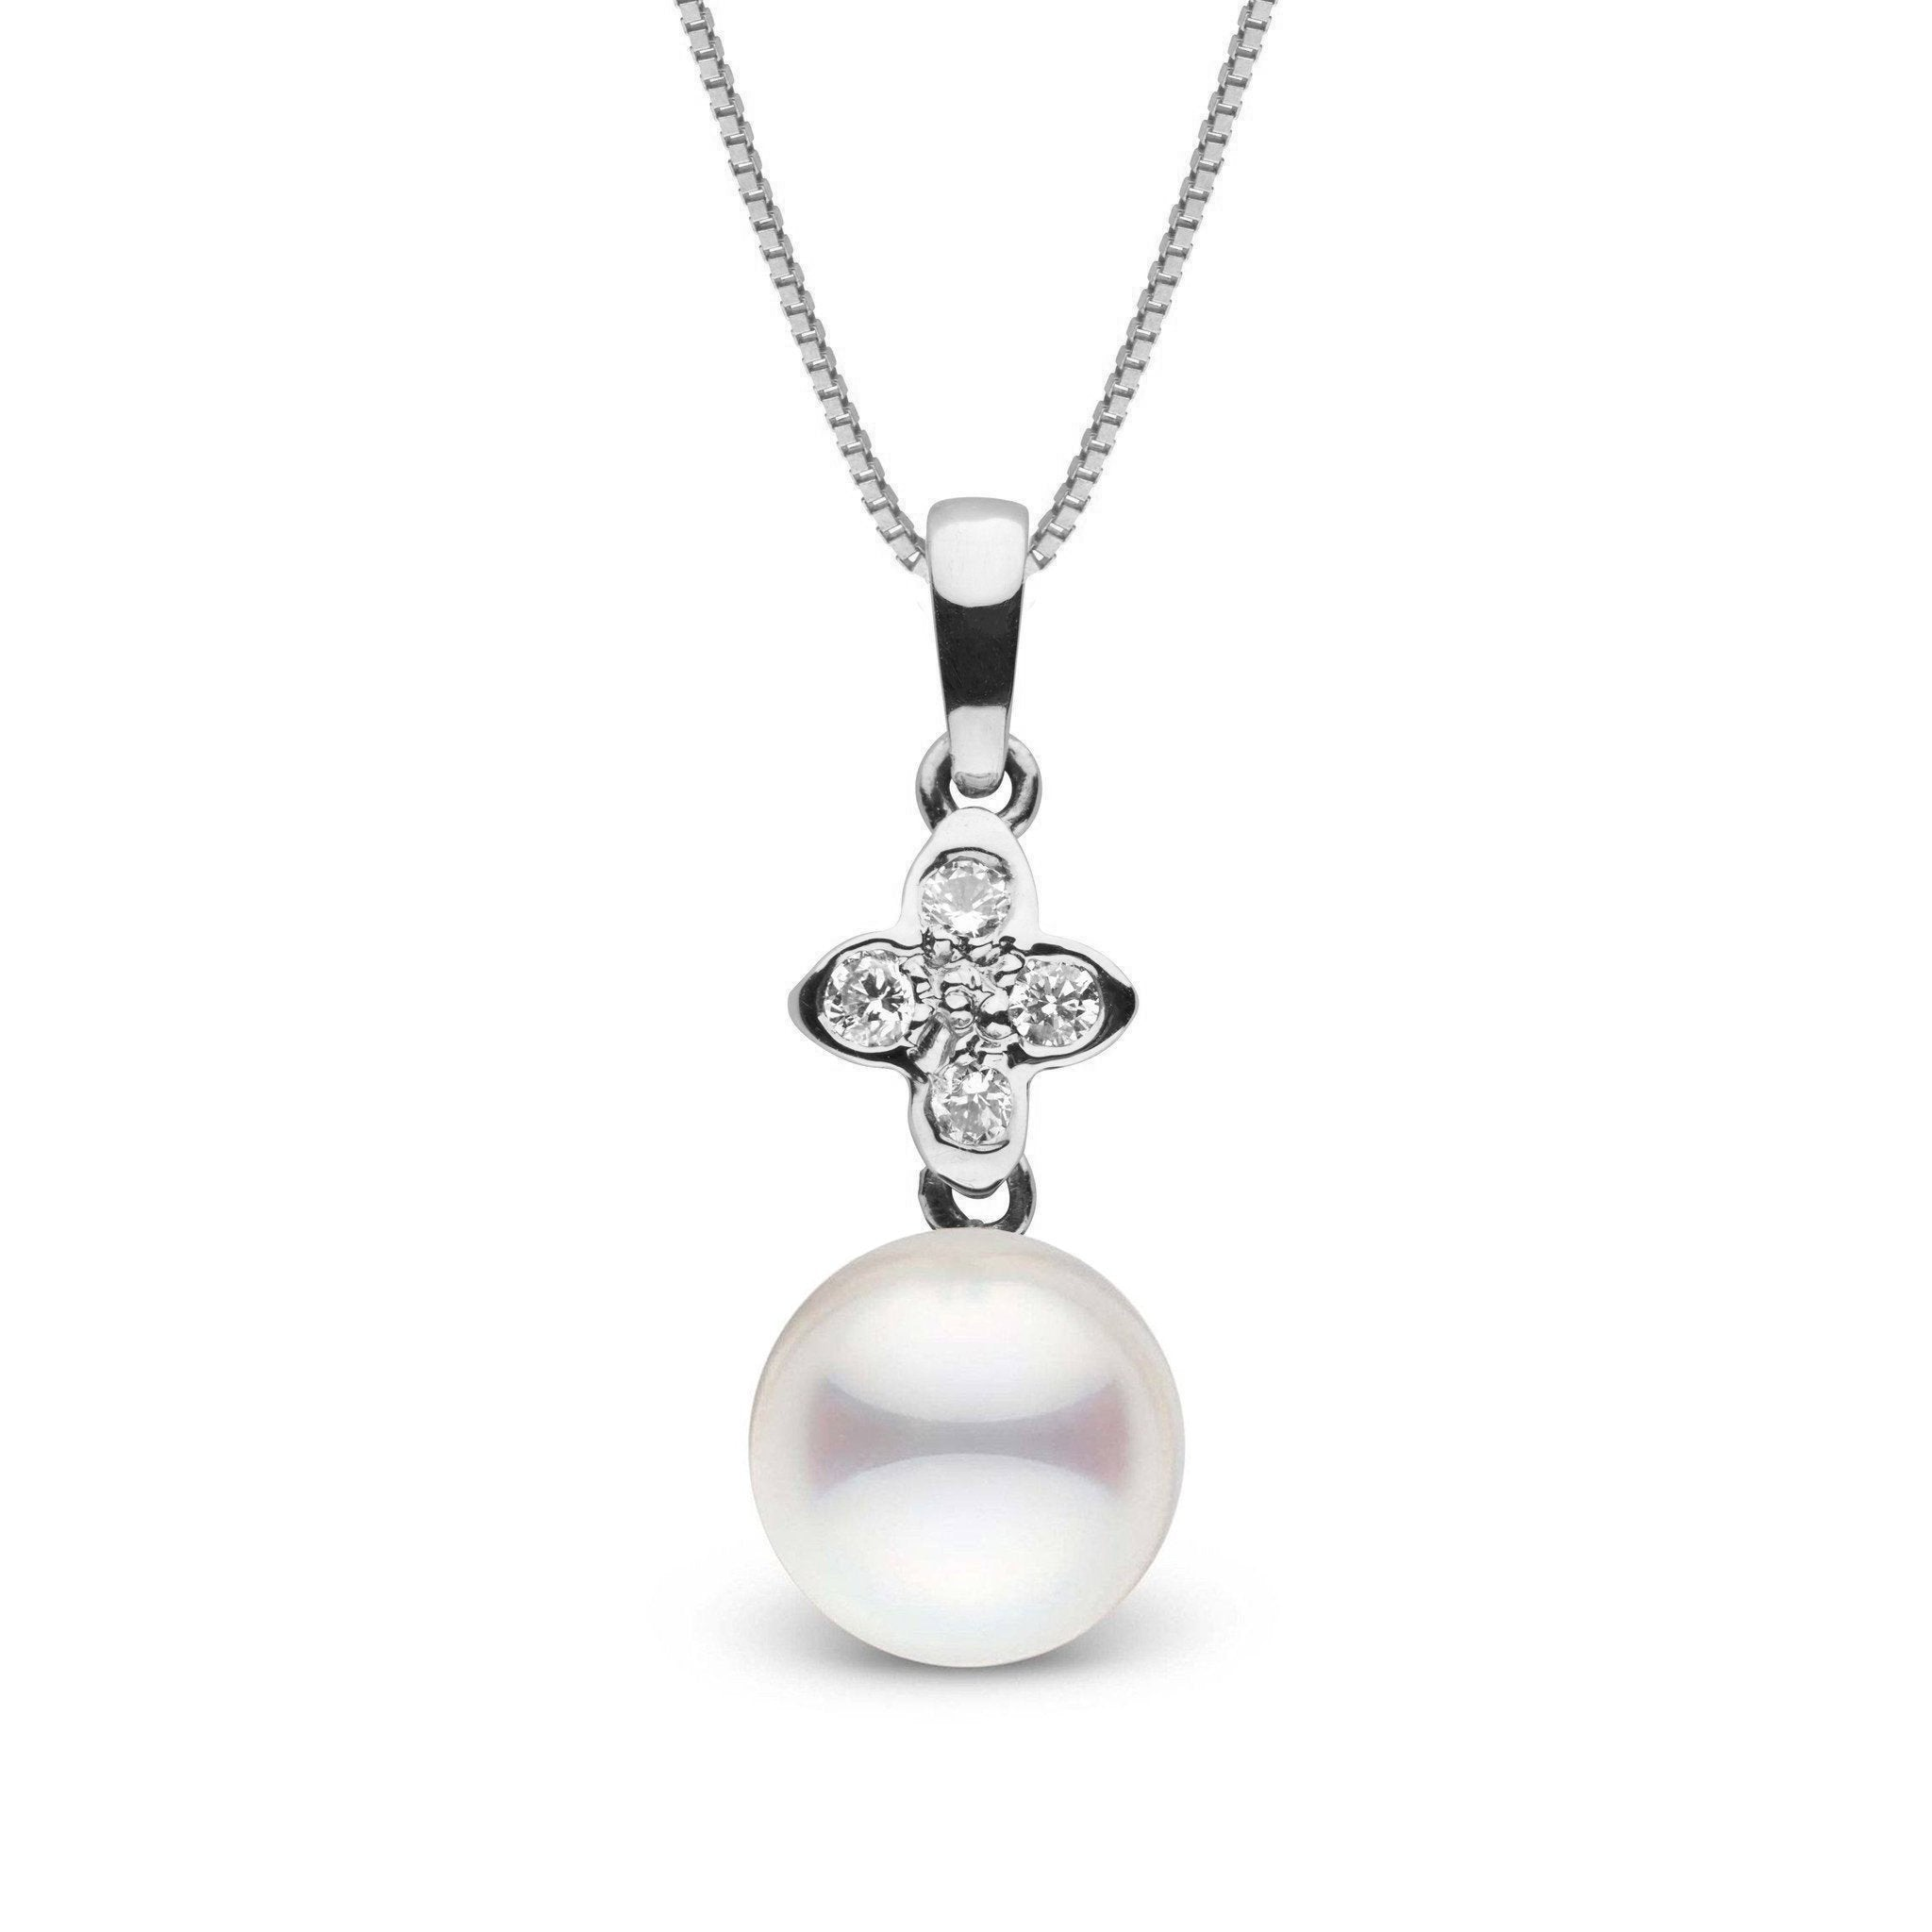 Violet Collection 8.0-8.5 mm Akoya Pearl and Diamond Pendant